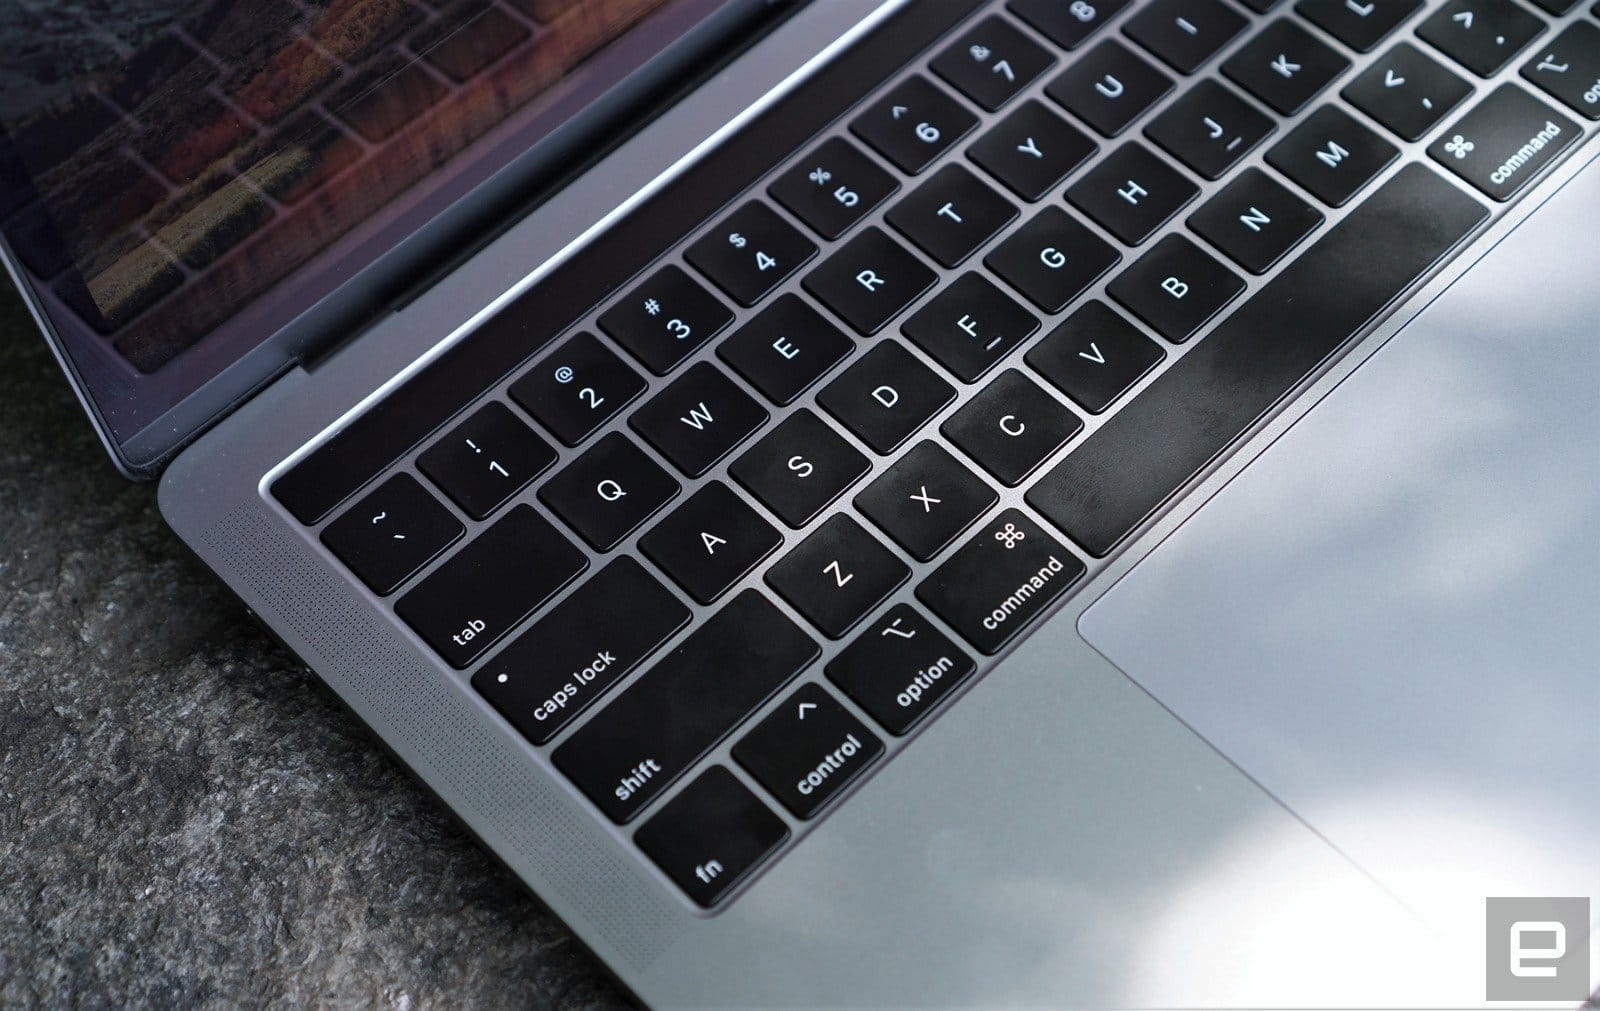 Apple's rumored 16-inch MacBook Pro may ditch the flaky keyboard